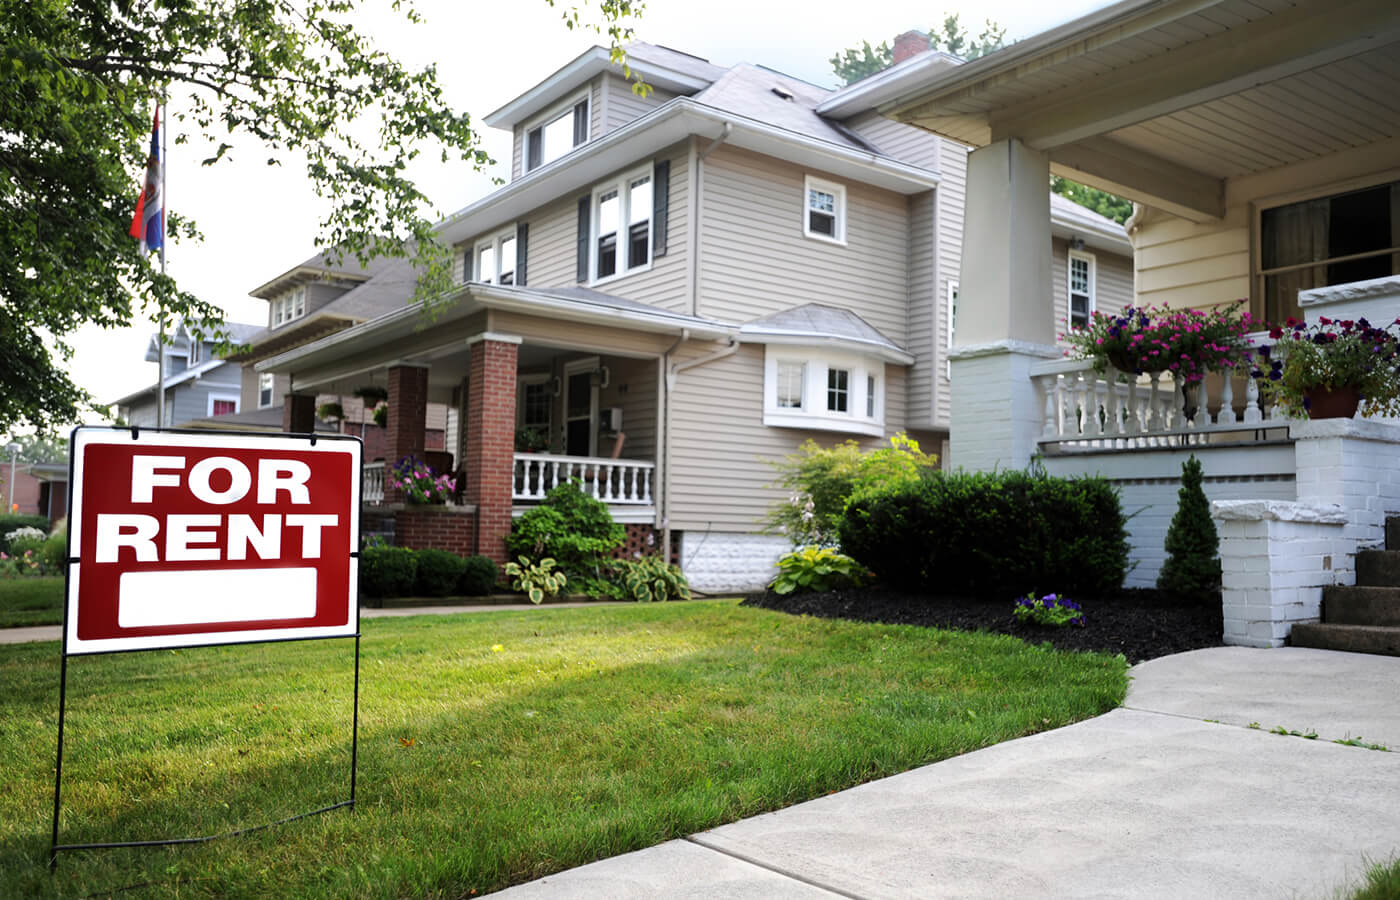 Can Renting Help Your Credit? | Experian